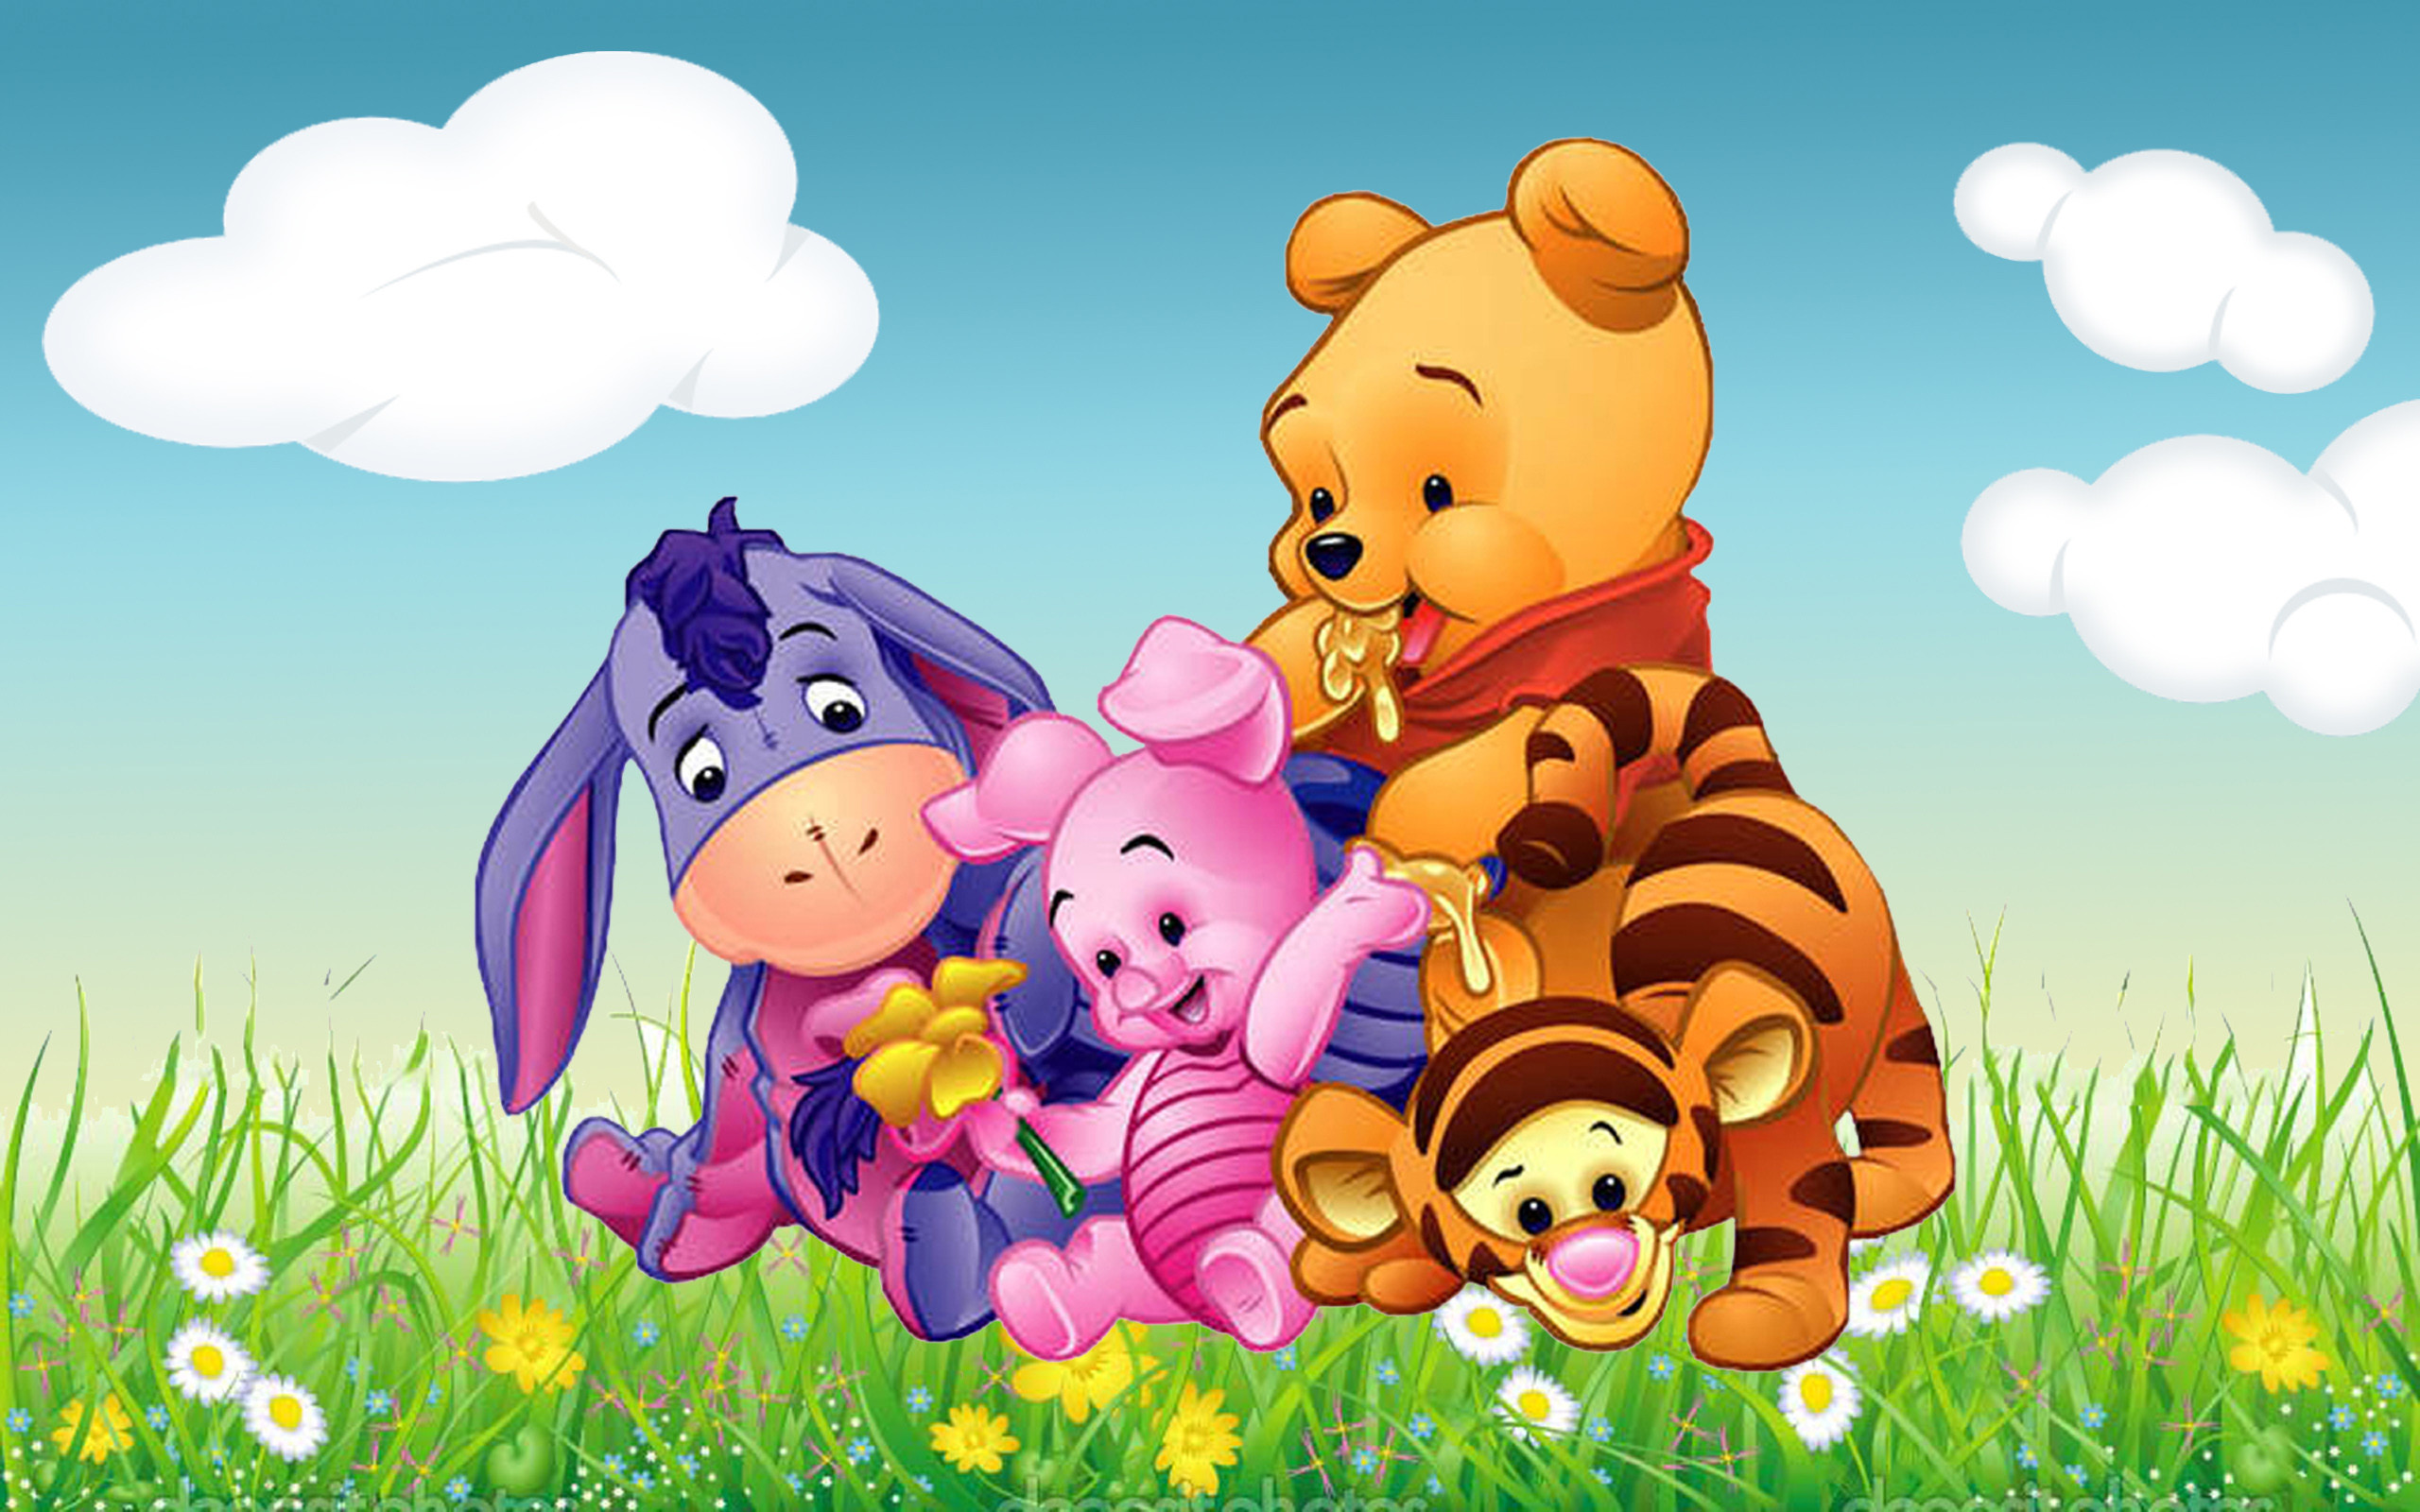 Winnie the pooh quotes iphone wallpaper